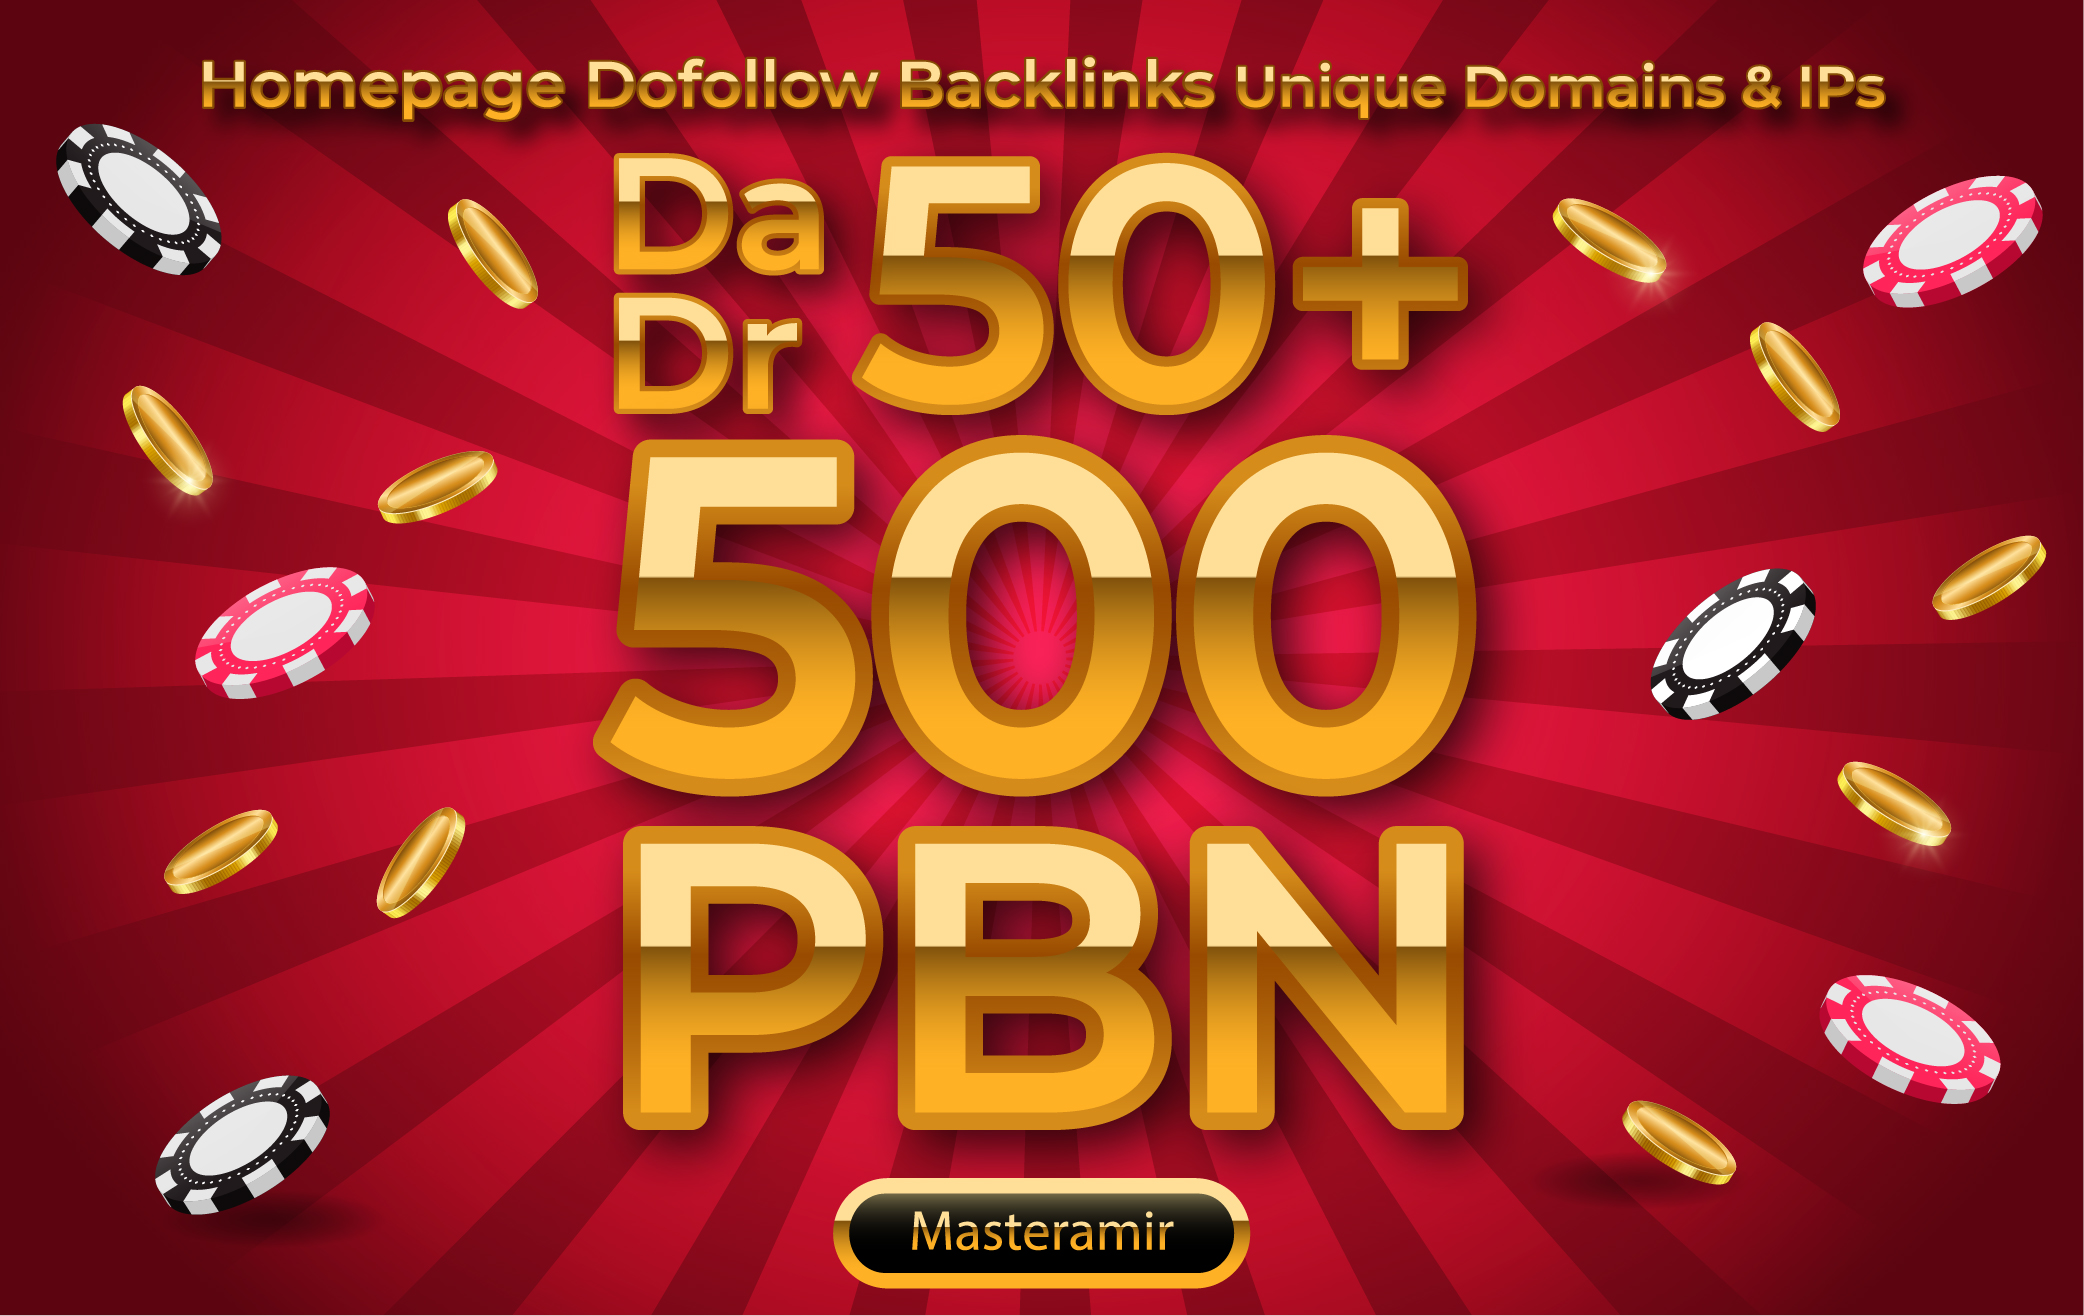 PBN DA & DR 50+ Homepage DoFollow Links for Casino,  Poker,  Gambling,  & Betting